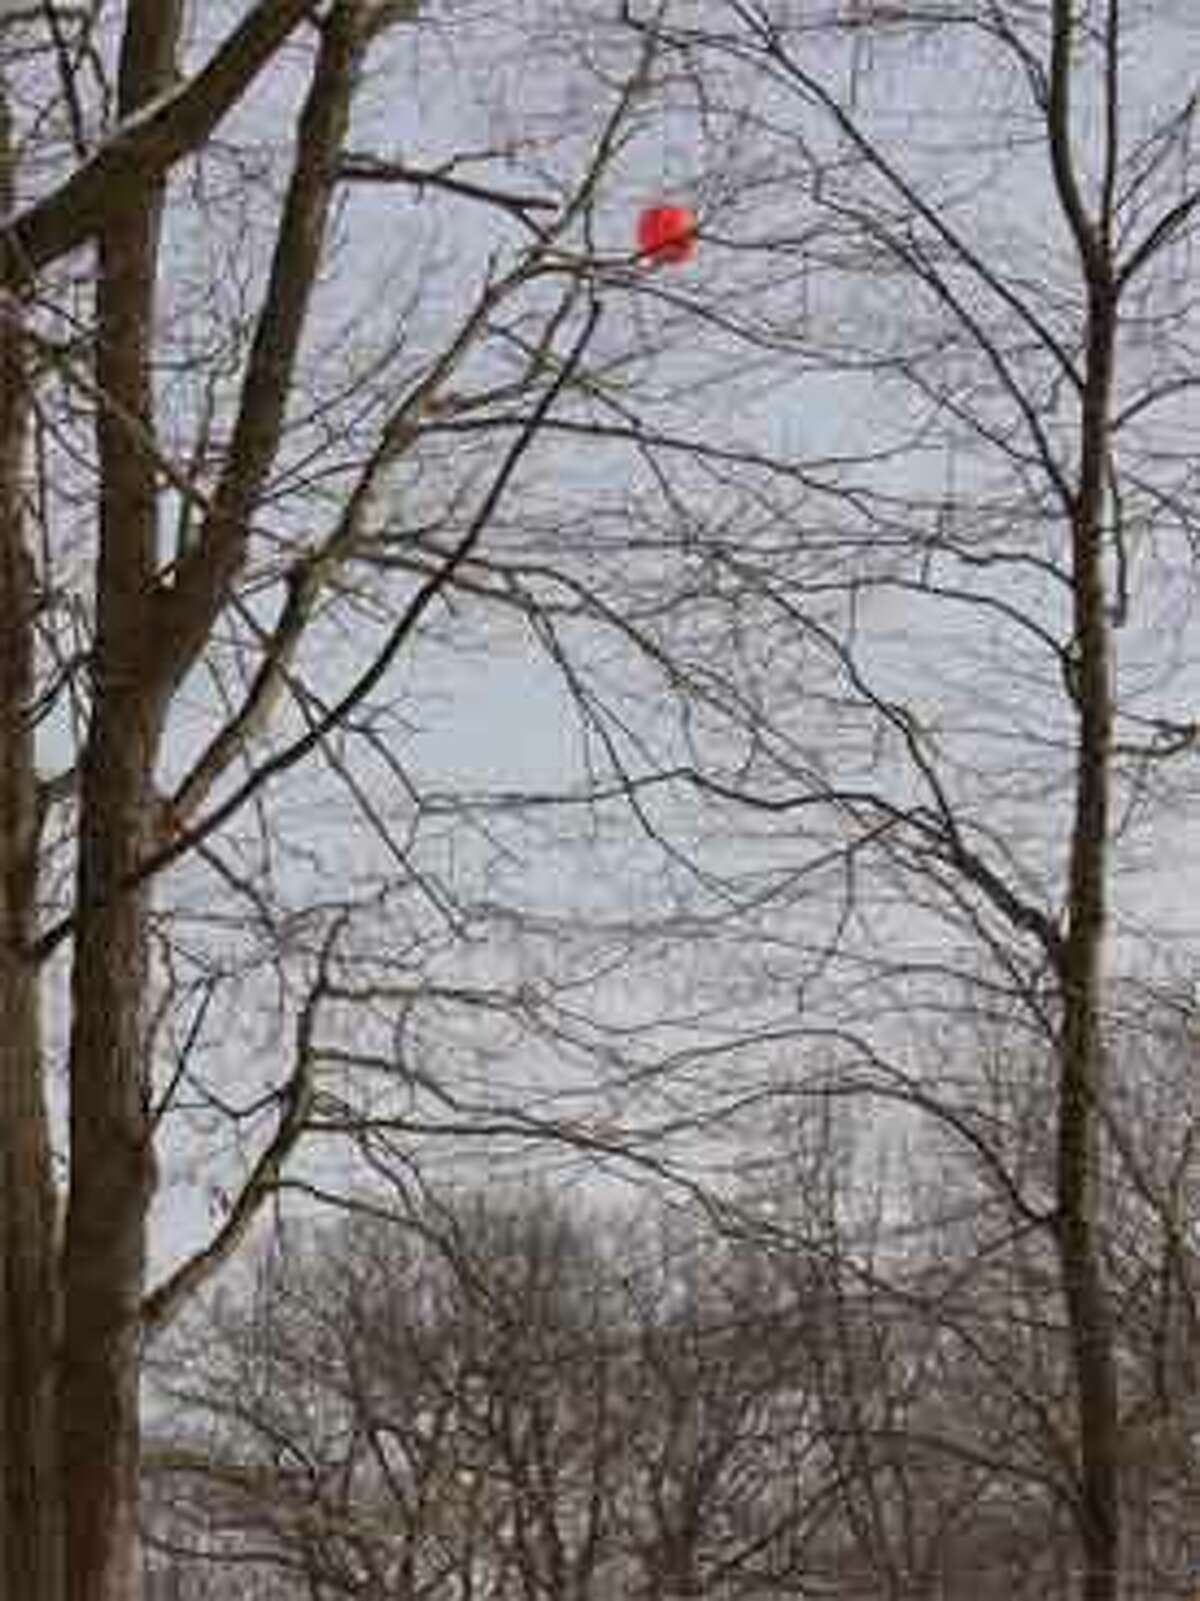 A view of the red balloon, also 120 feet in the air, showing the alternative possible cell phone tower site at the more isolated location, near the southern end of the dead-end Walnut Avenue.